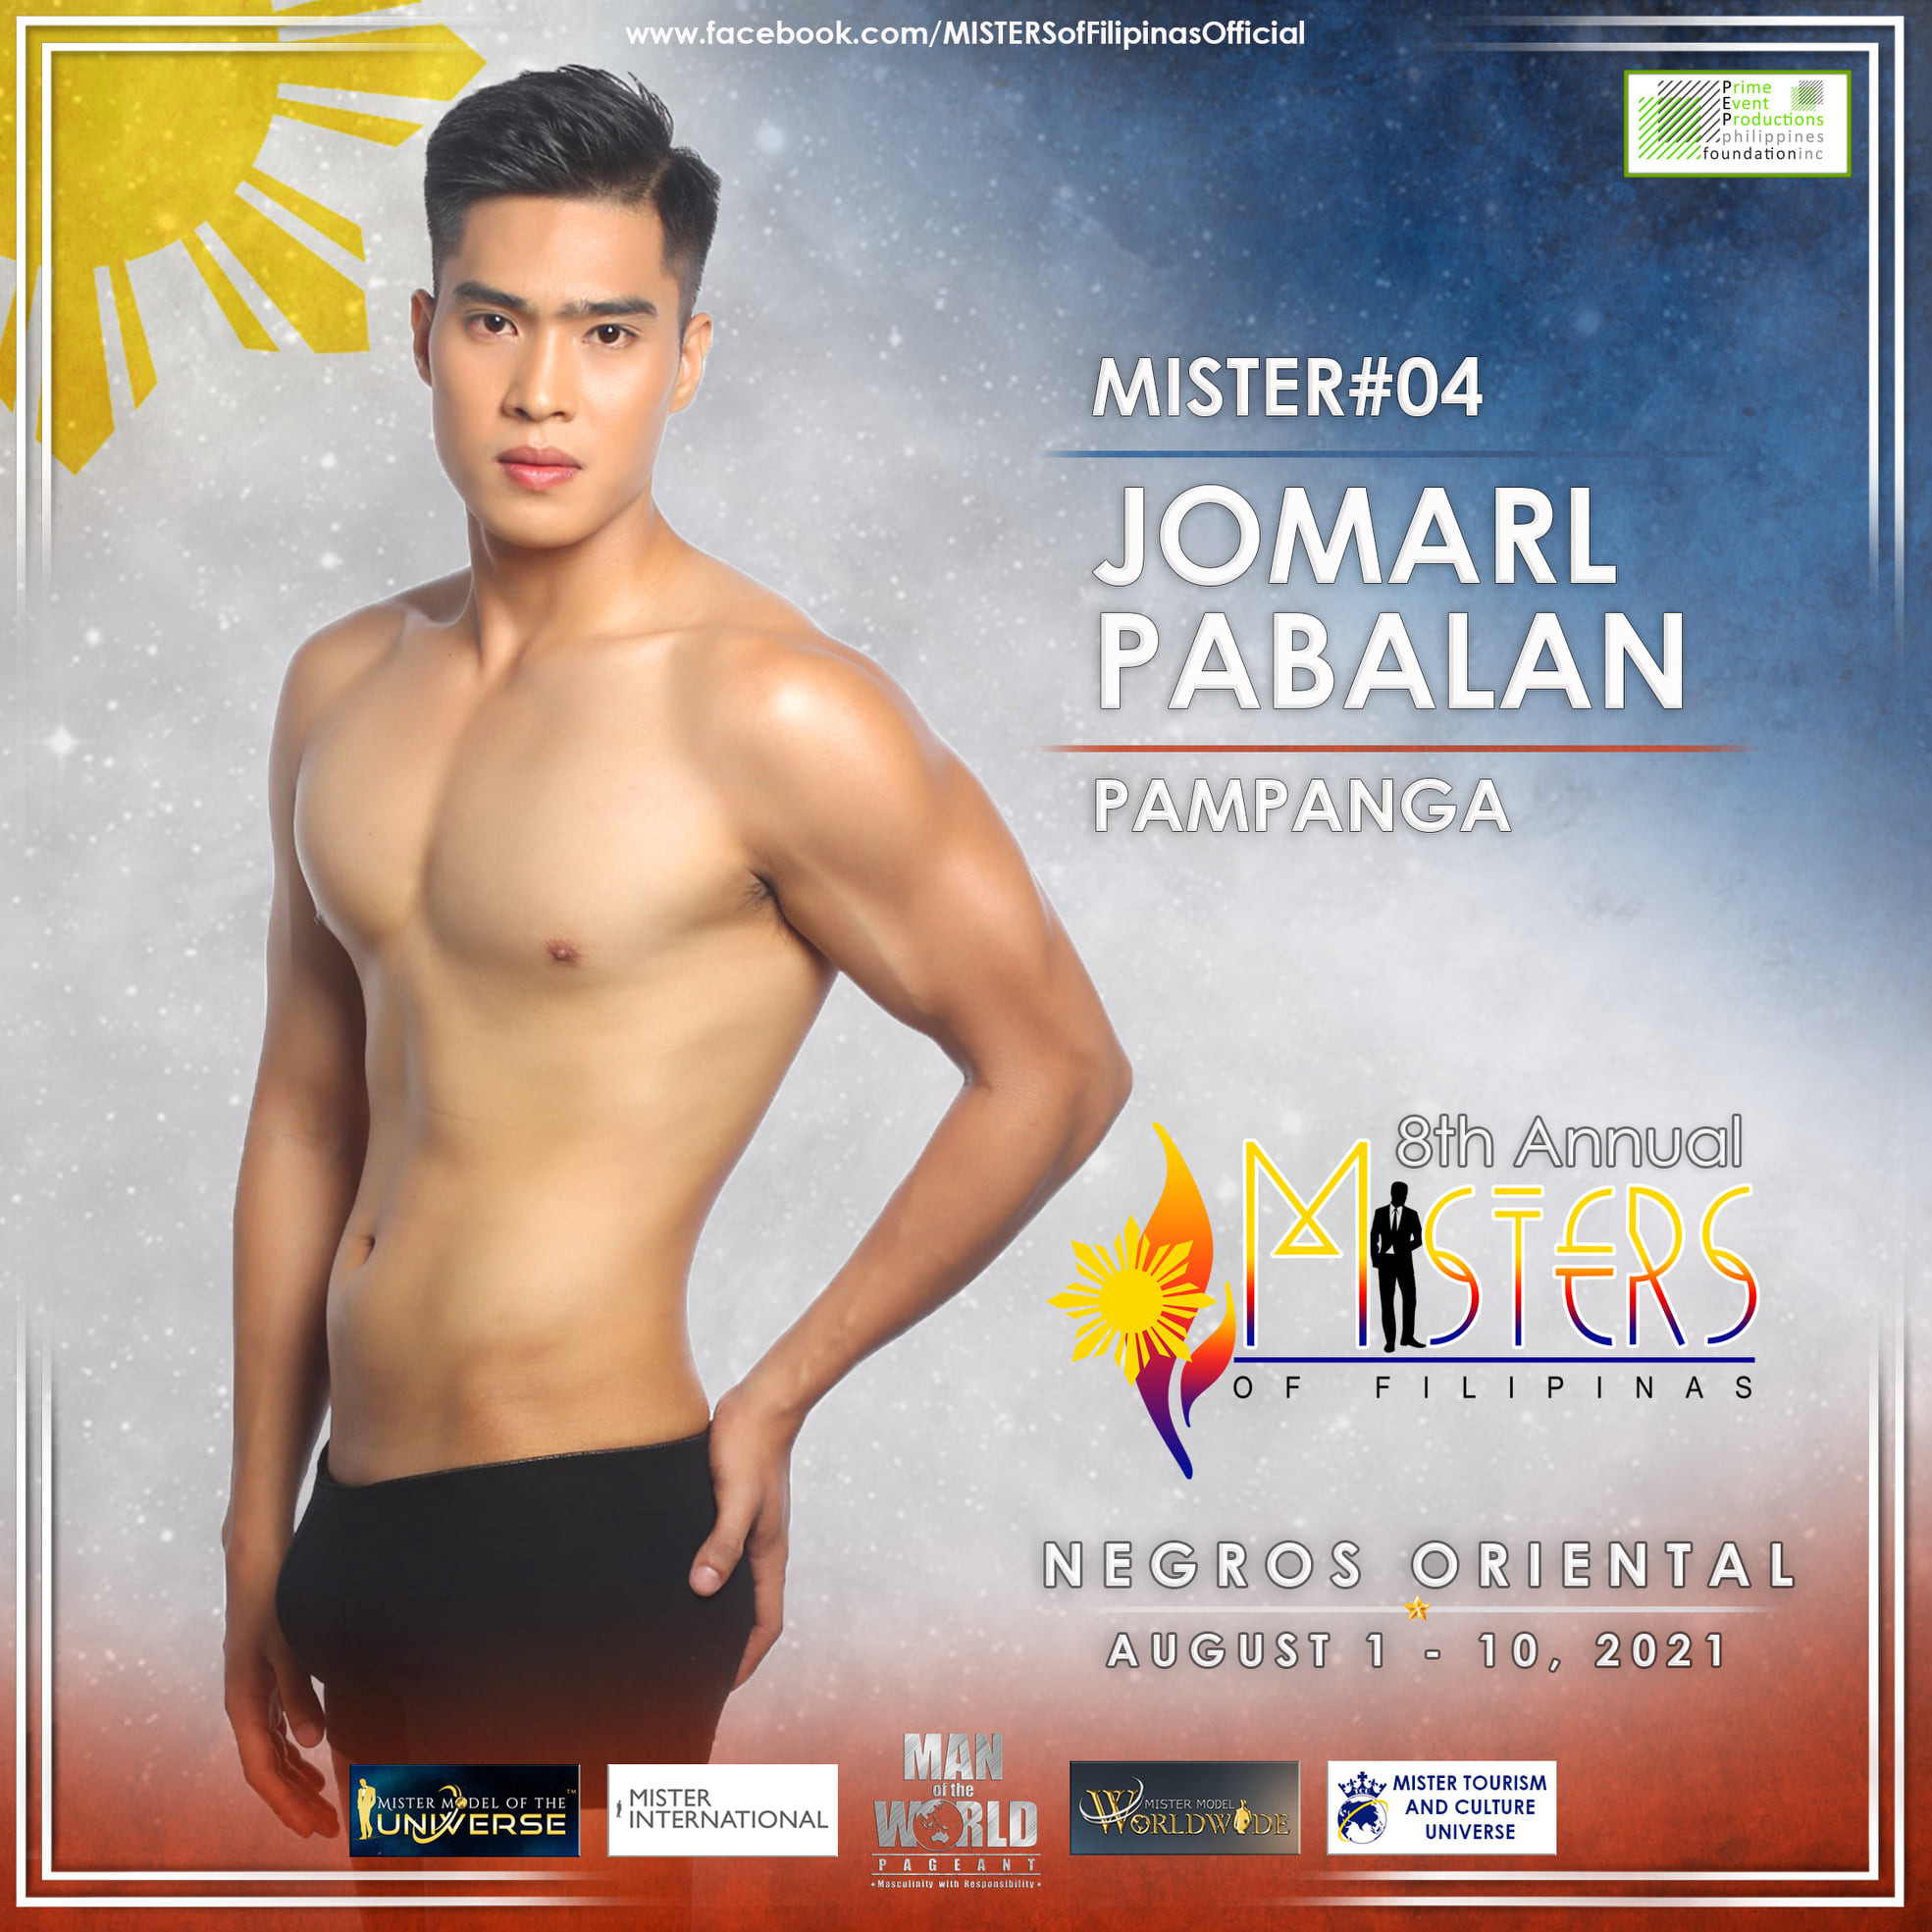 candidatos a misters of filipinas 2021. final: 27 agosto. Owf8EN